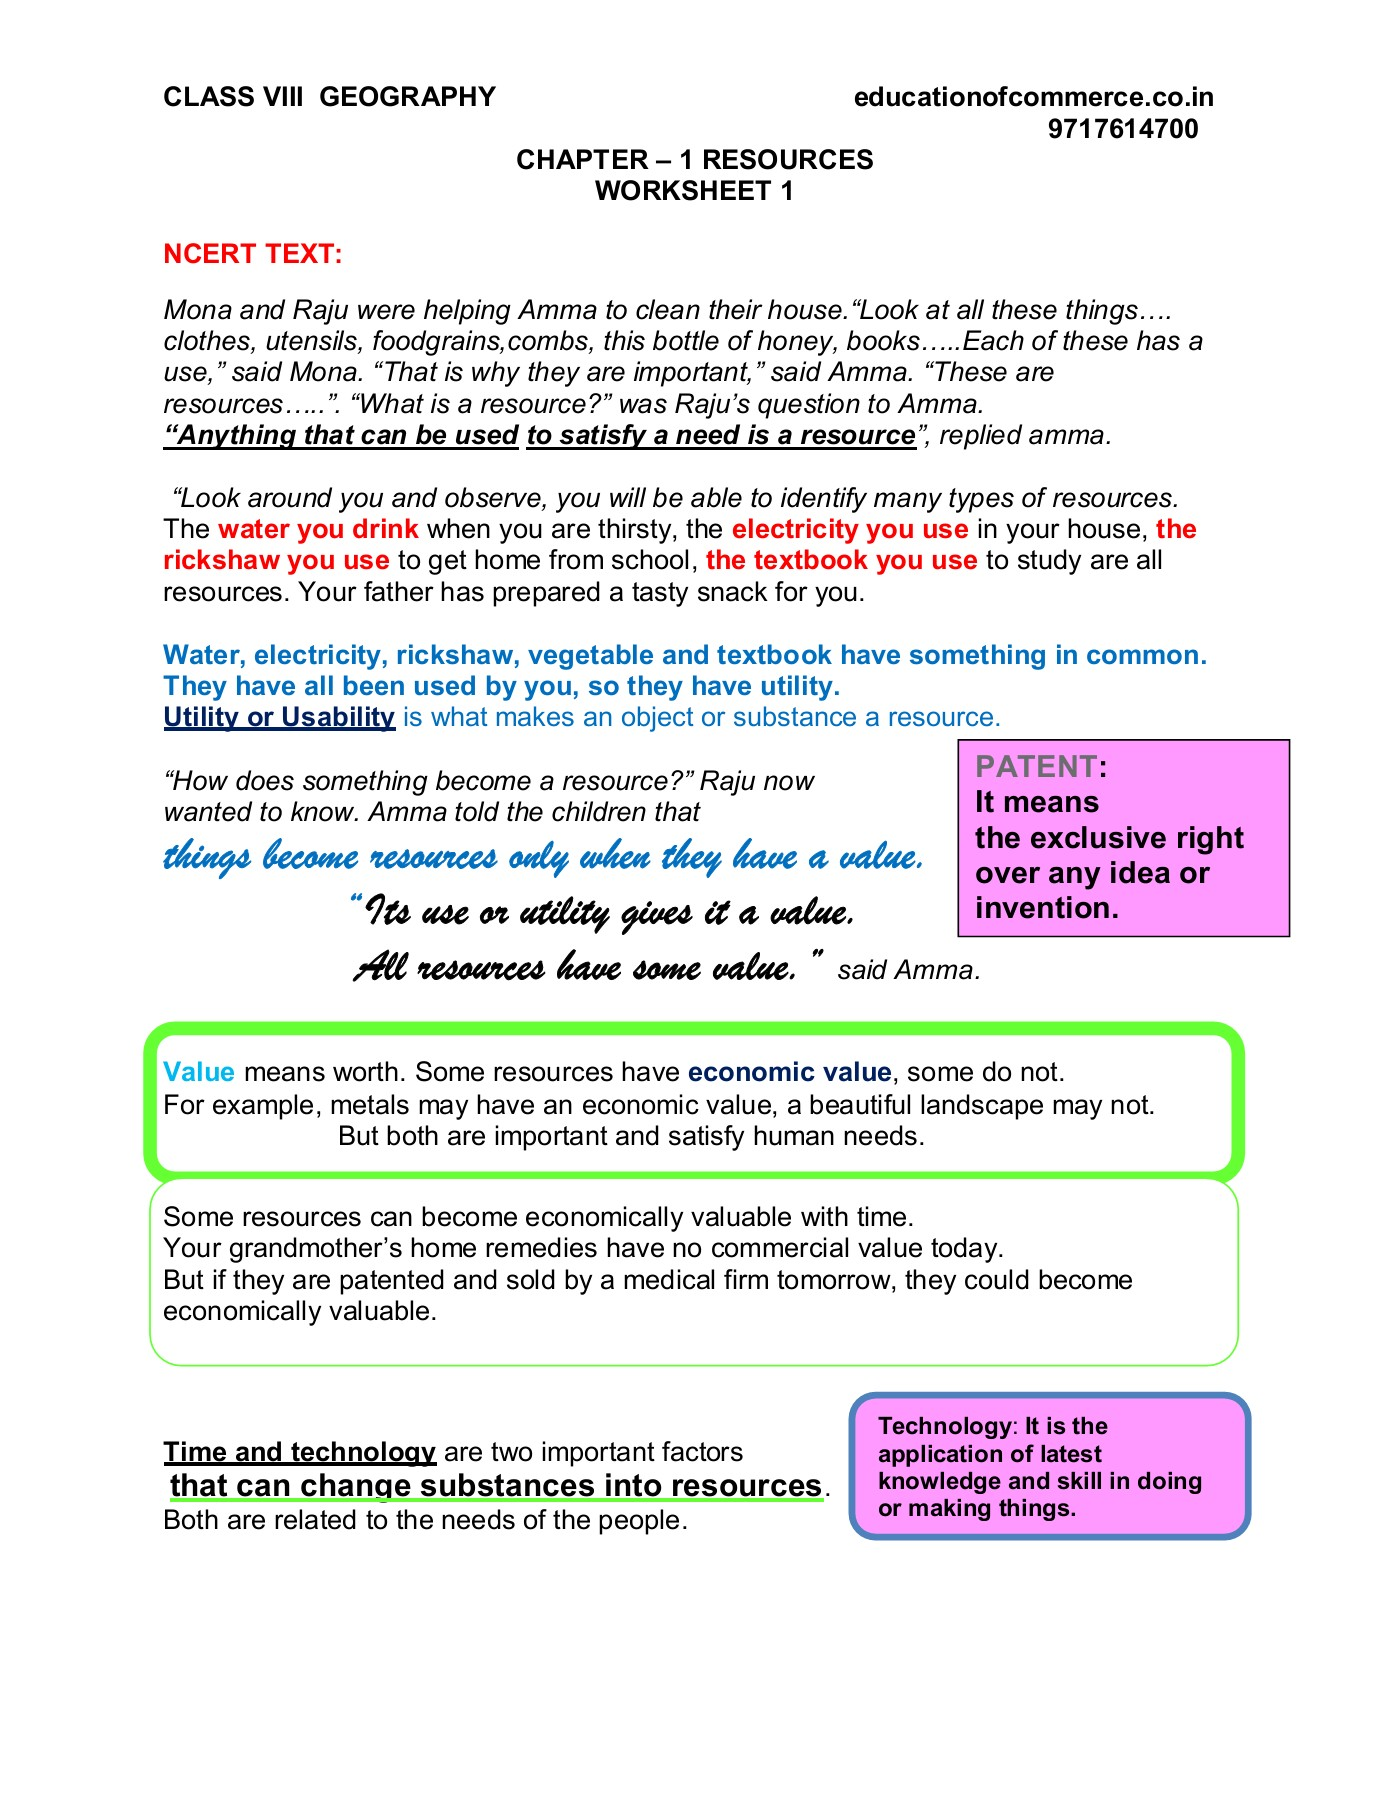 small resolution of Worksheet 1 - Geography (Grade VIII) - Chapter - 1 (Resources) - Topic  Utility